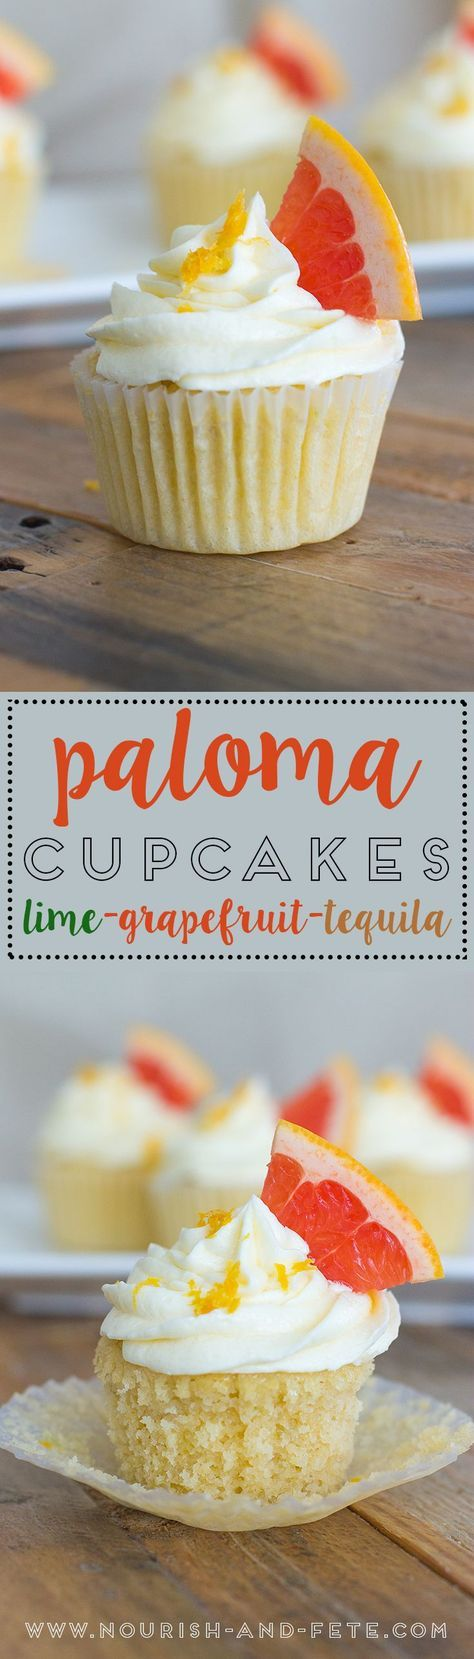 Boozy cupcakes bursting with lime, grapefruit, and tequila, inspired by the crisp flavors of a Mexican Paloma cocktail. Perfect for Cinco de Mayo or any summer fiesta! via @nourishandfete